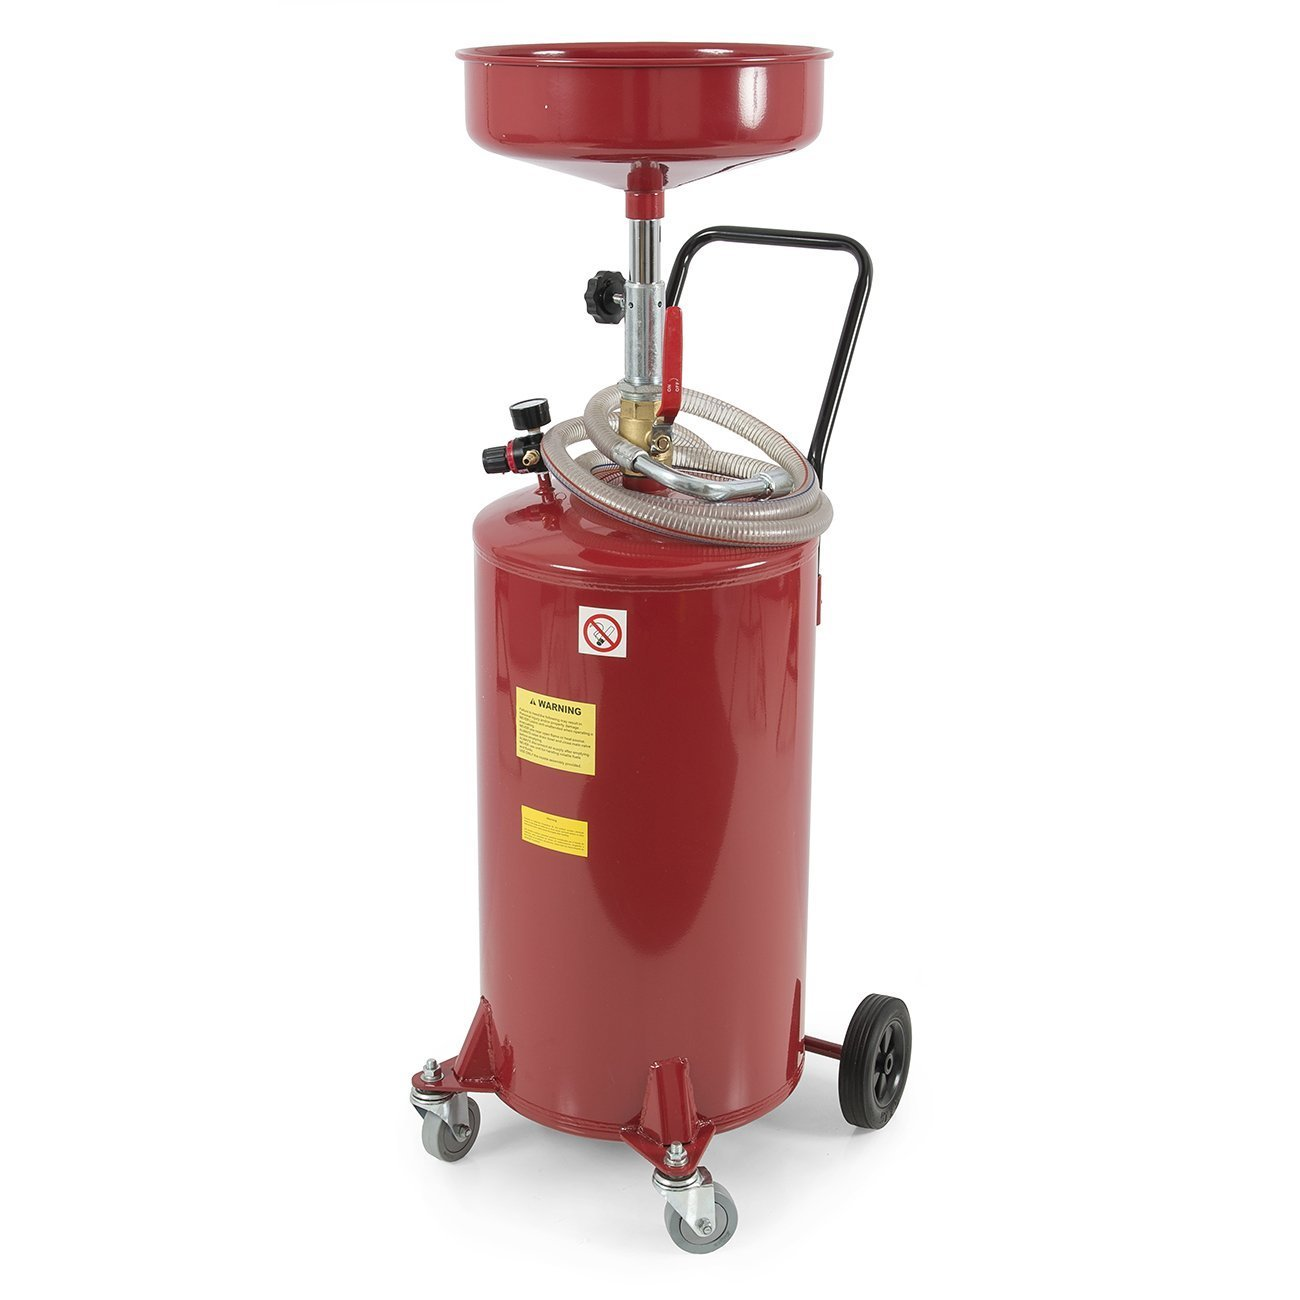 ARKSEN Red 20 Gallon Air Operated Portable Waste Oil Drain Tank